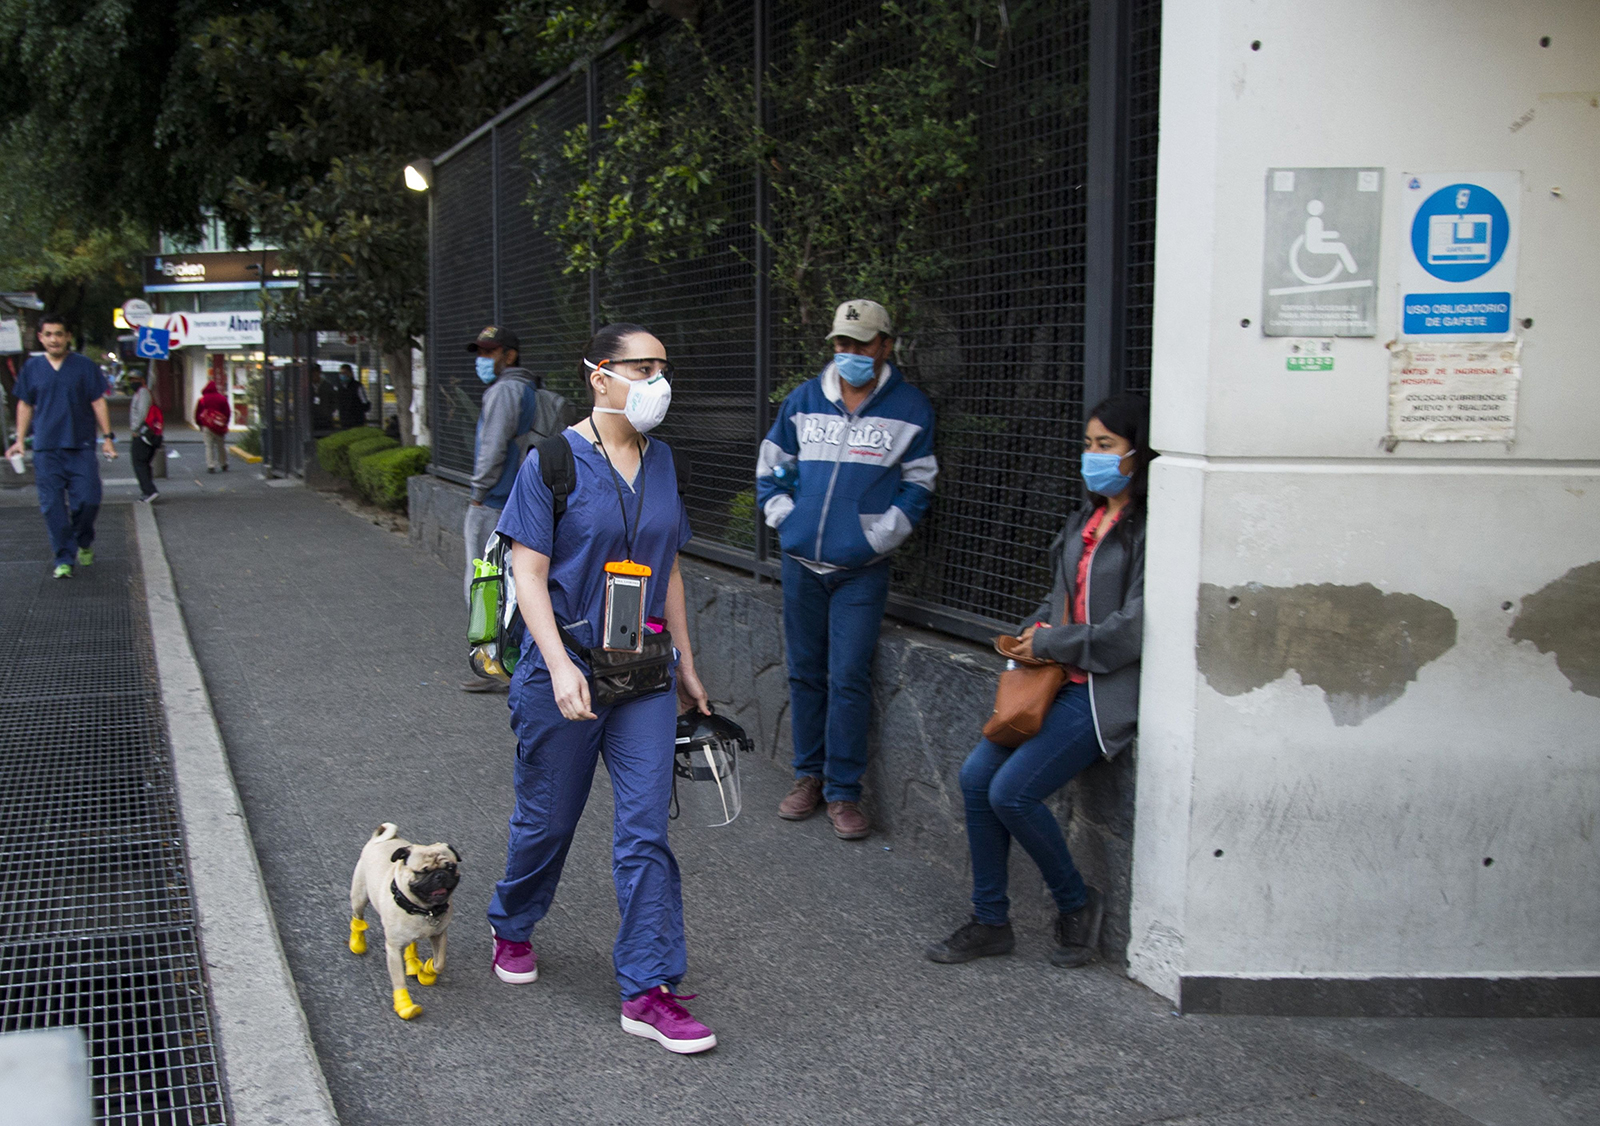 Psychologist and neuropsychologist Lucia Ledesma Torres and her dog Harley, arrive at a hospital in Mexico City, on May 13.